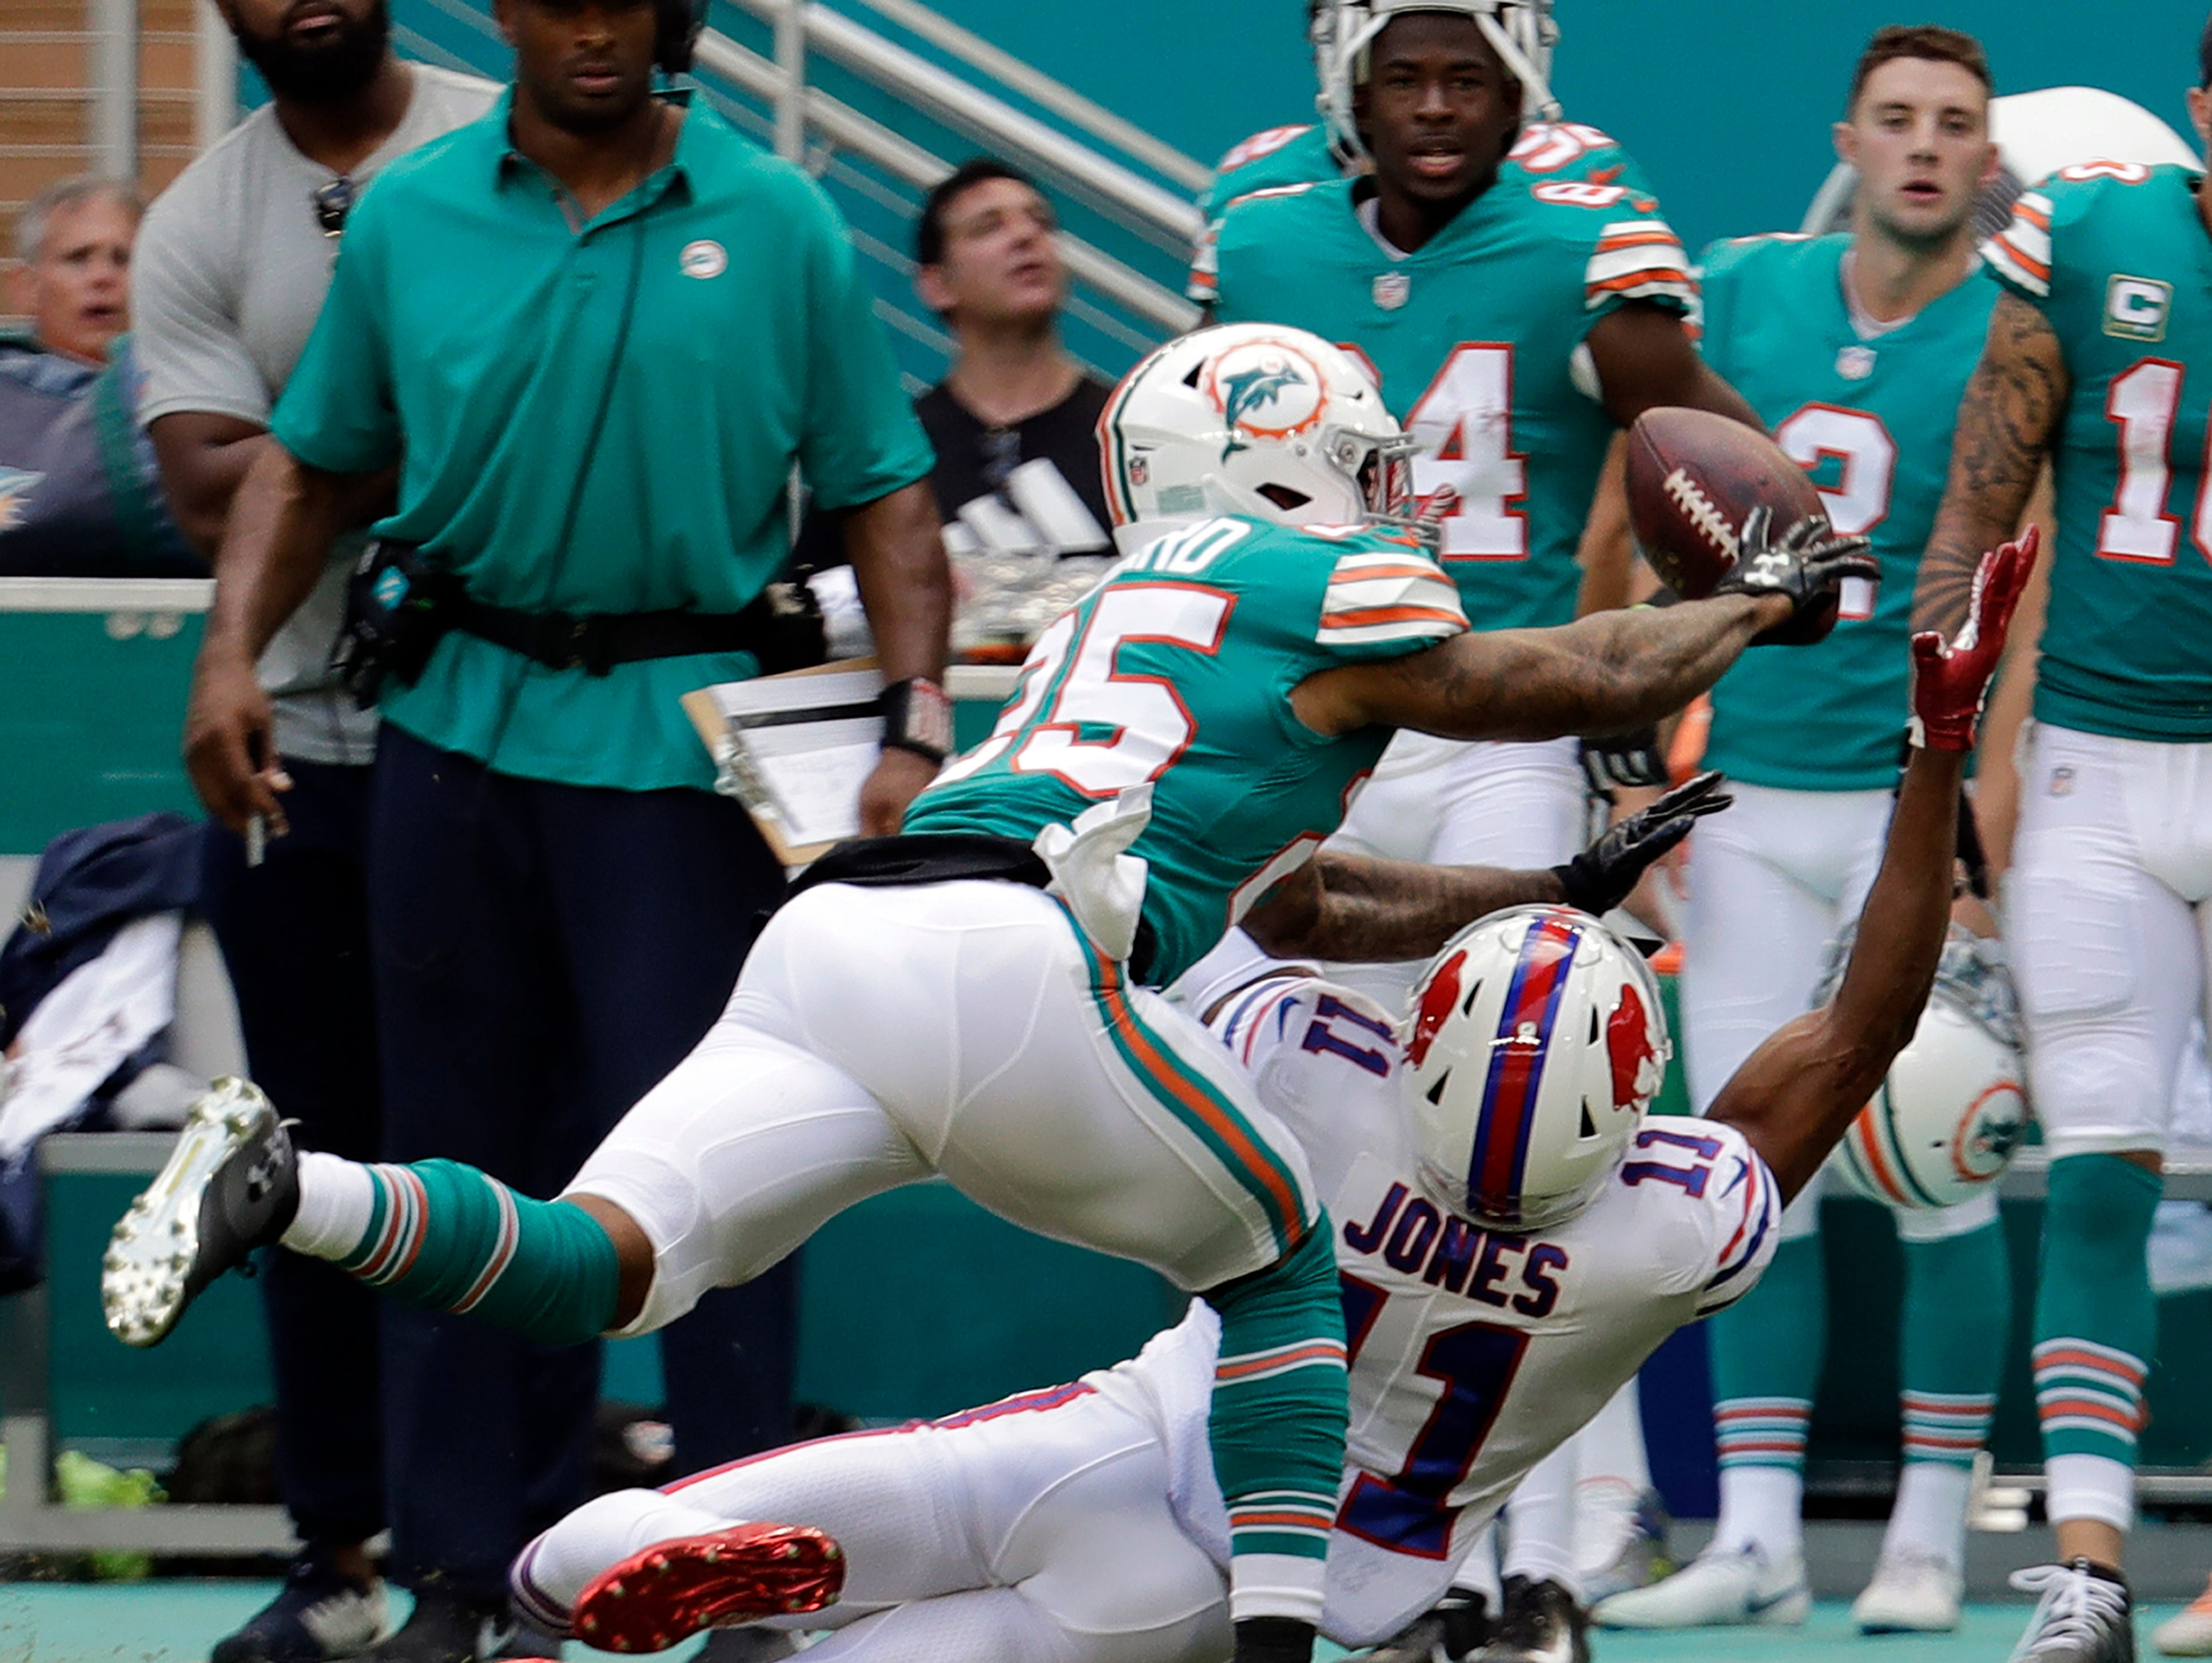 CORRECTS TO XAVIEN HOWARD (25) FROM MIAMI DOLPHINS DEFENSIVE BACK WALT AIKENS (35)- Miami Dolphins cornerback Xavien Howard attempts to grab a pass intended for Buffalo Bills wide receiver Zay Jones (11), during the first half of an NFL football game, Sunday, Dec. 2, 2018, in Miami Gardens, Fla. (AP Photo/Lynne Sladky)